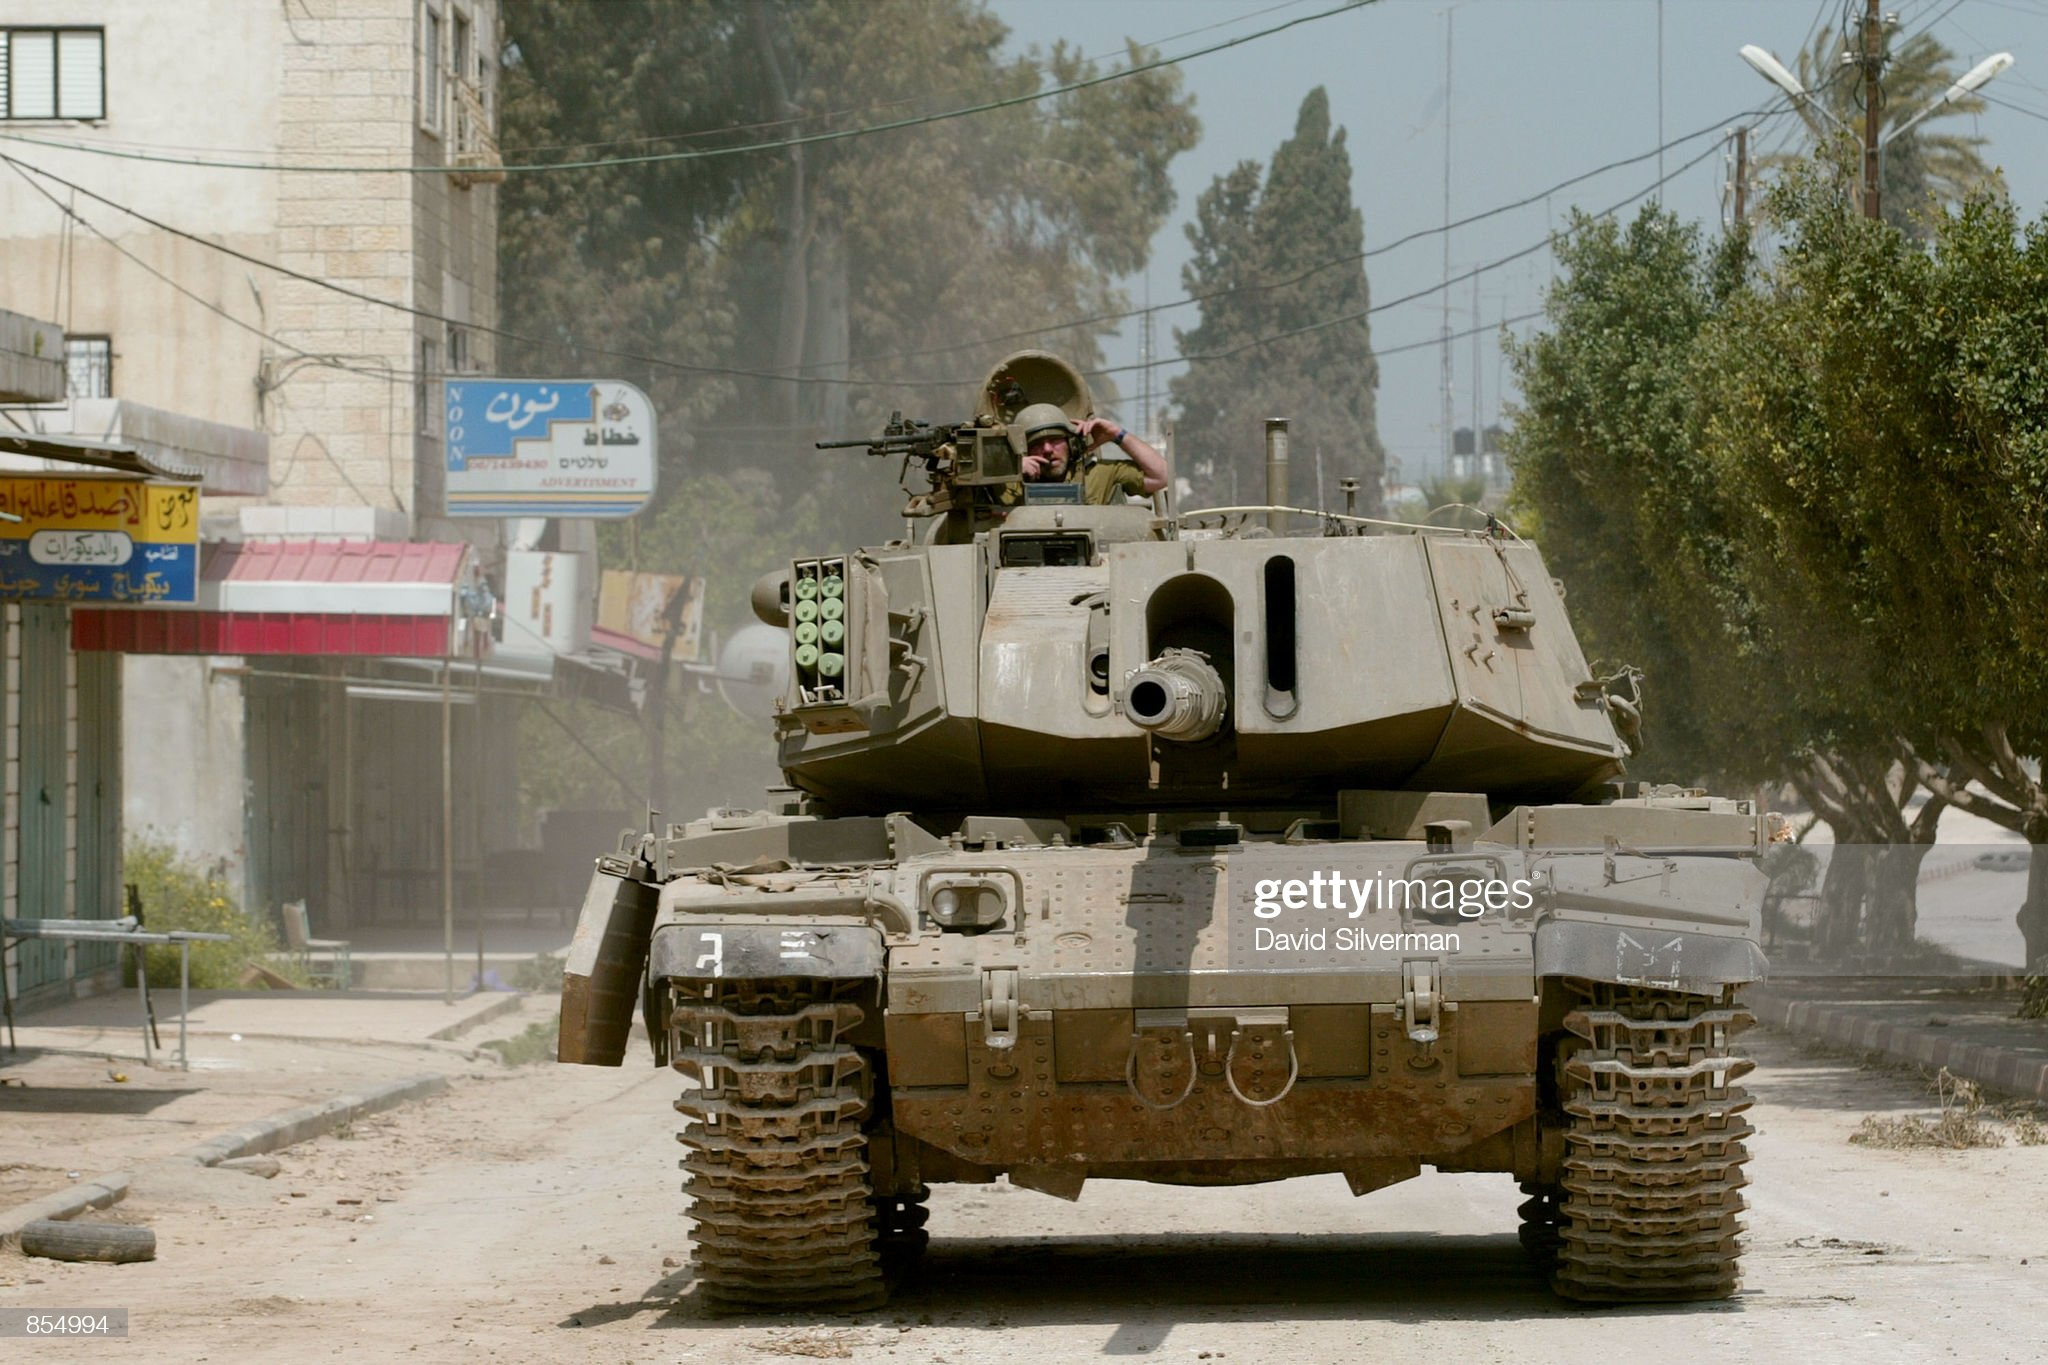 https://media.gettyimages.com/photos/an-israeli-tank-advances-down-a-main-road-in-the-west-bank-town-of-picture-id854994?s=2048x2048